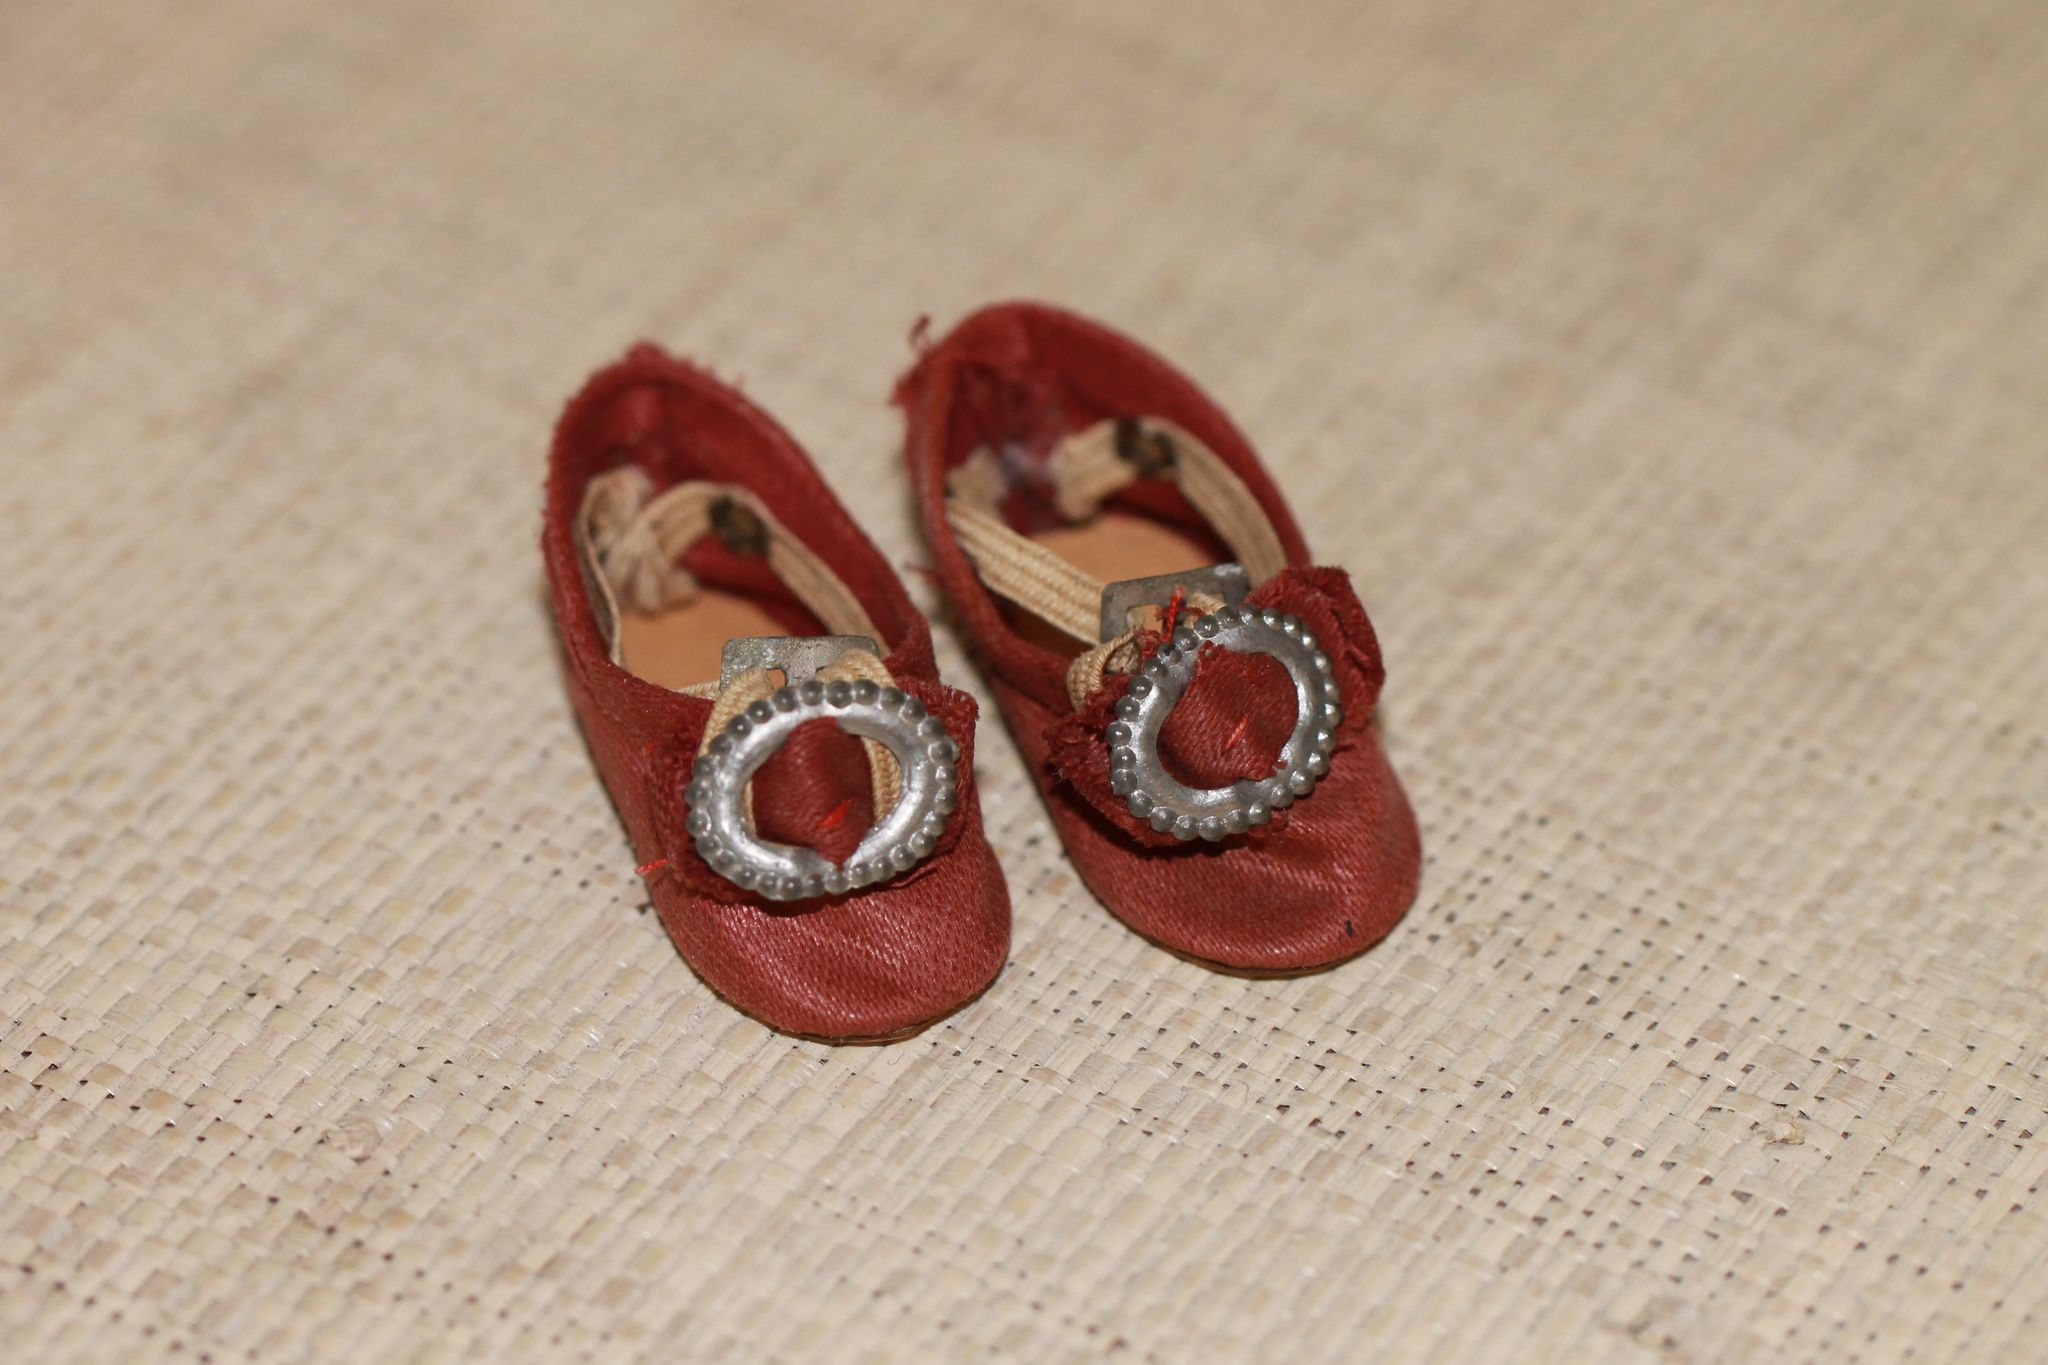 Small Reddish Antique Doll Shoes for Bisque, China Doll